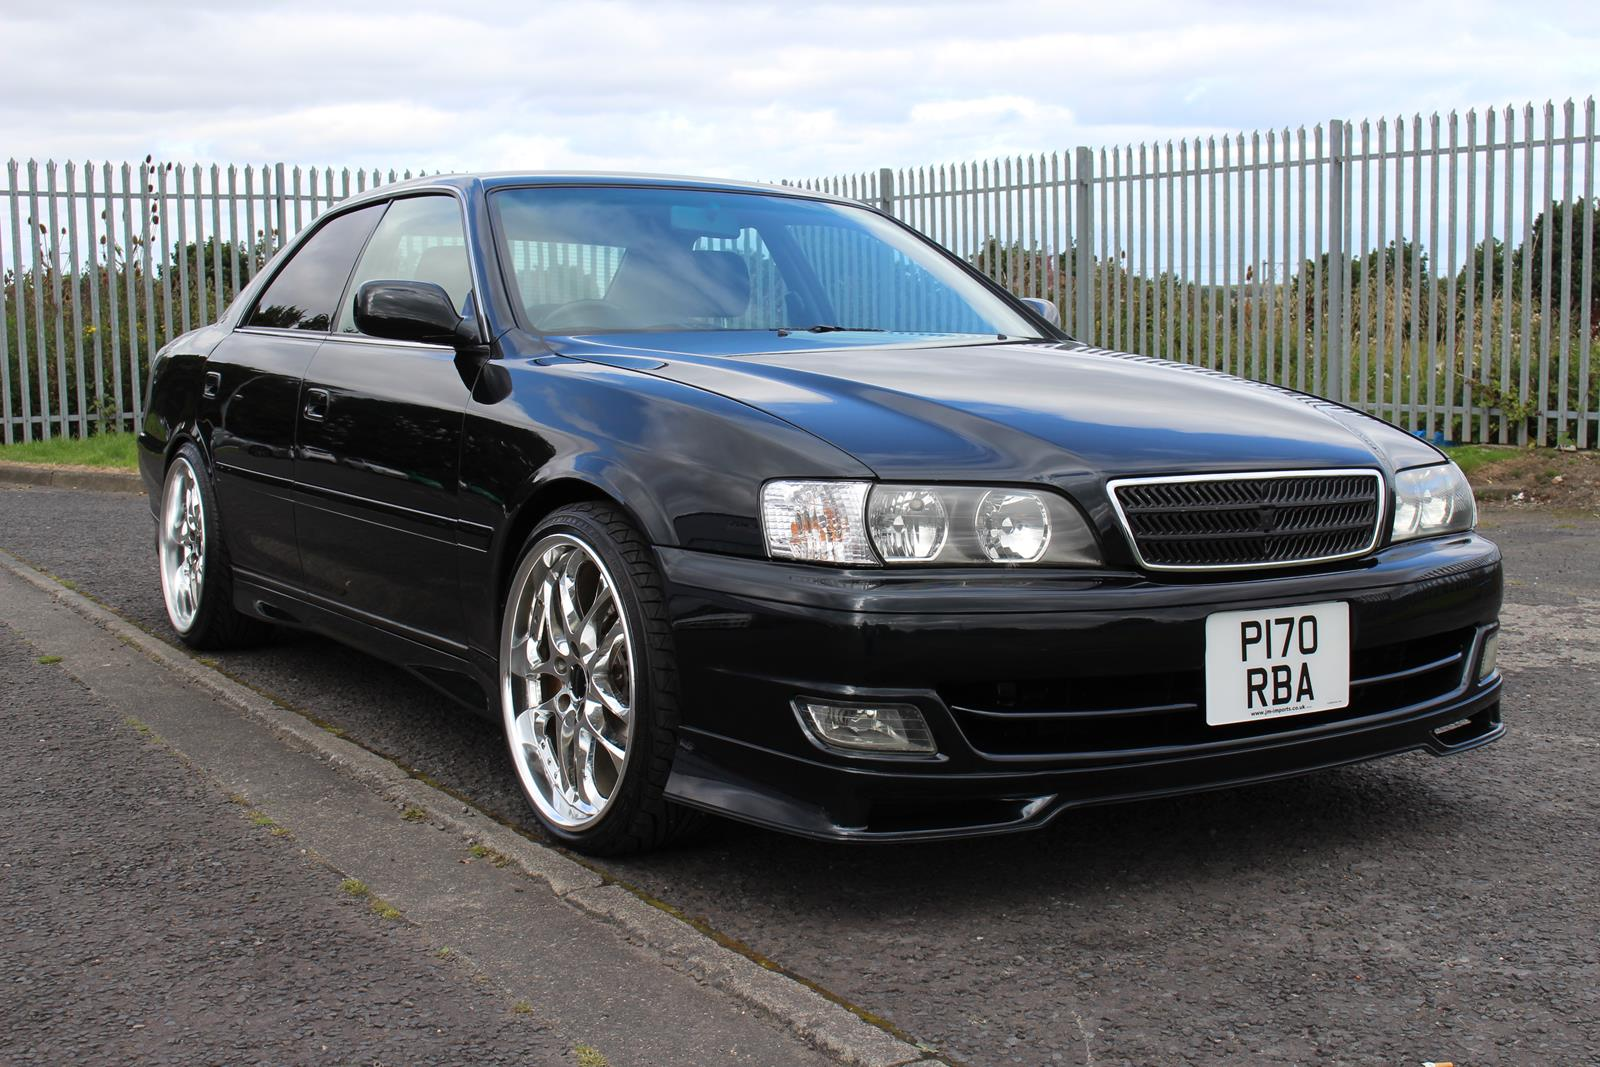 2009 Nissan Gtr For Sale >> 1998 Toyota Chaser JZX100 5 Speed Manual - JM-Imports